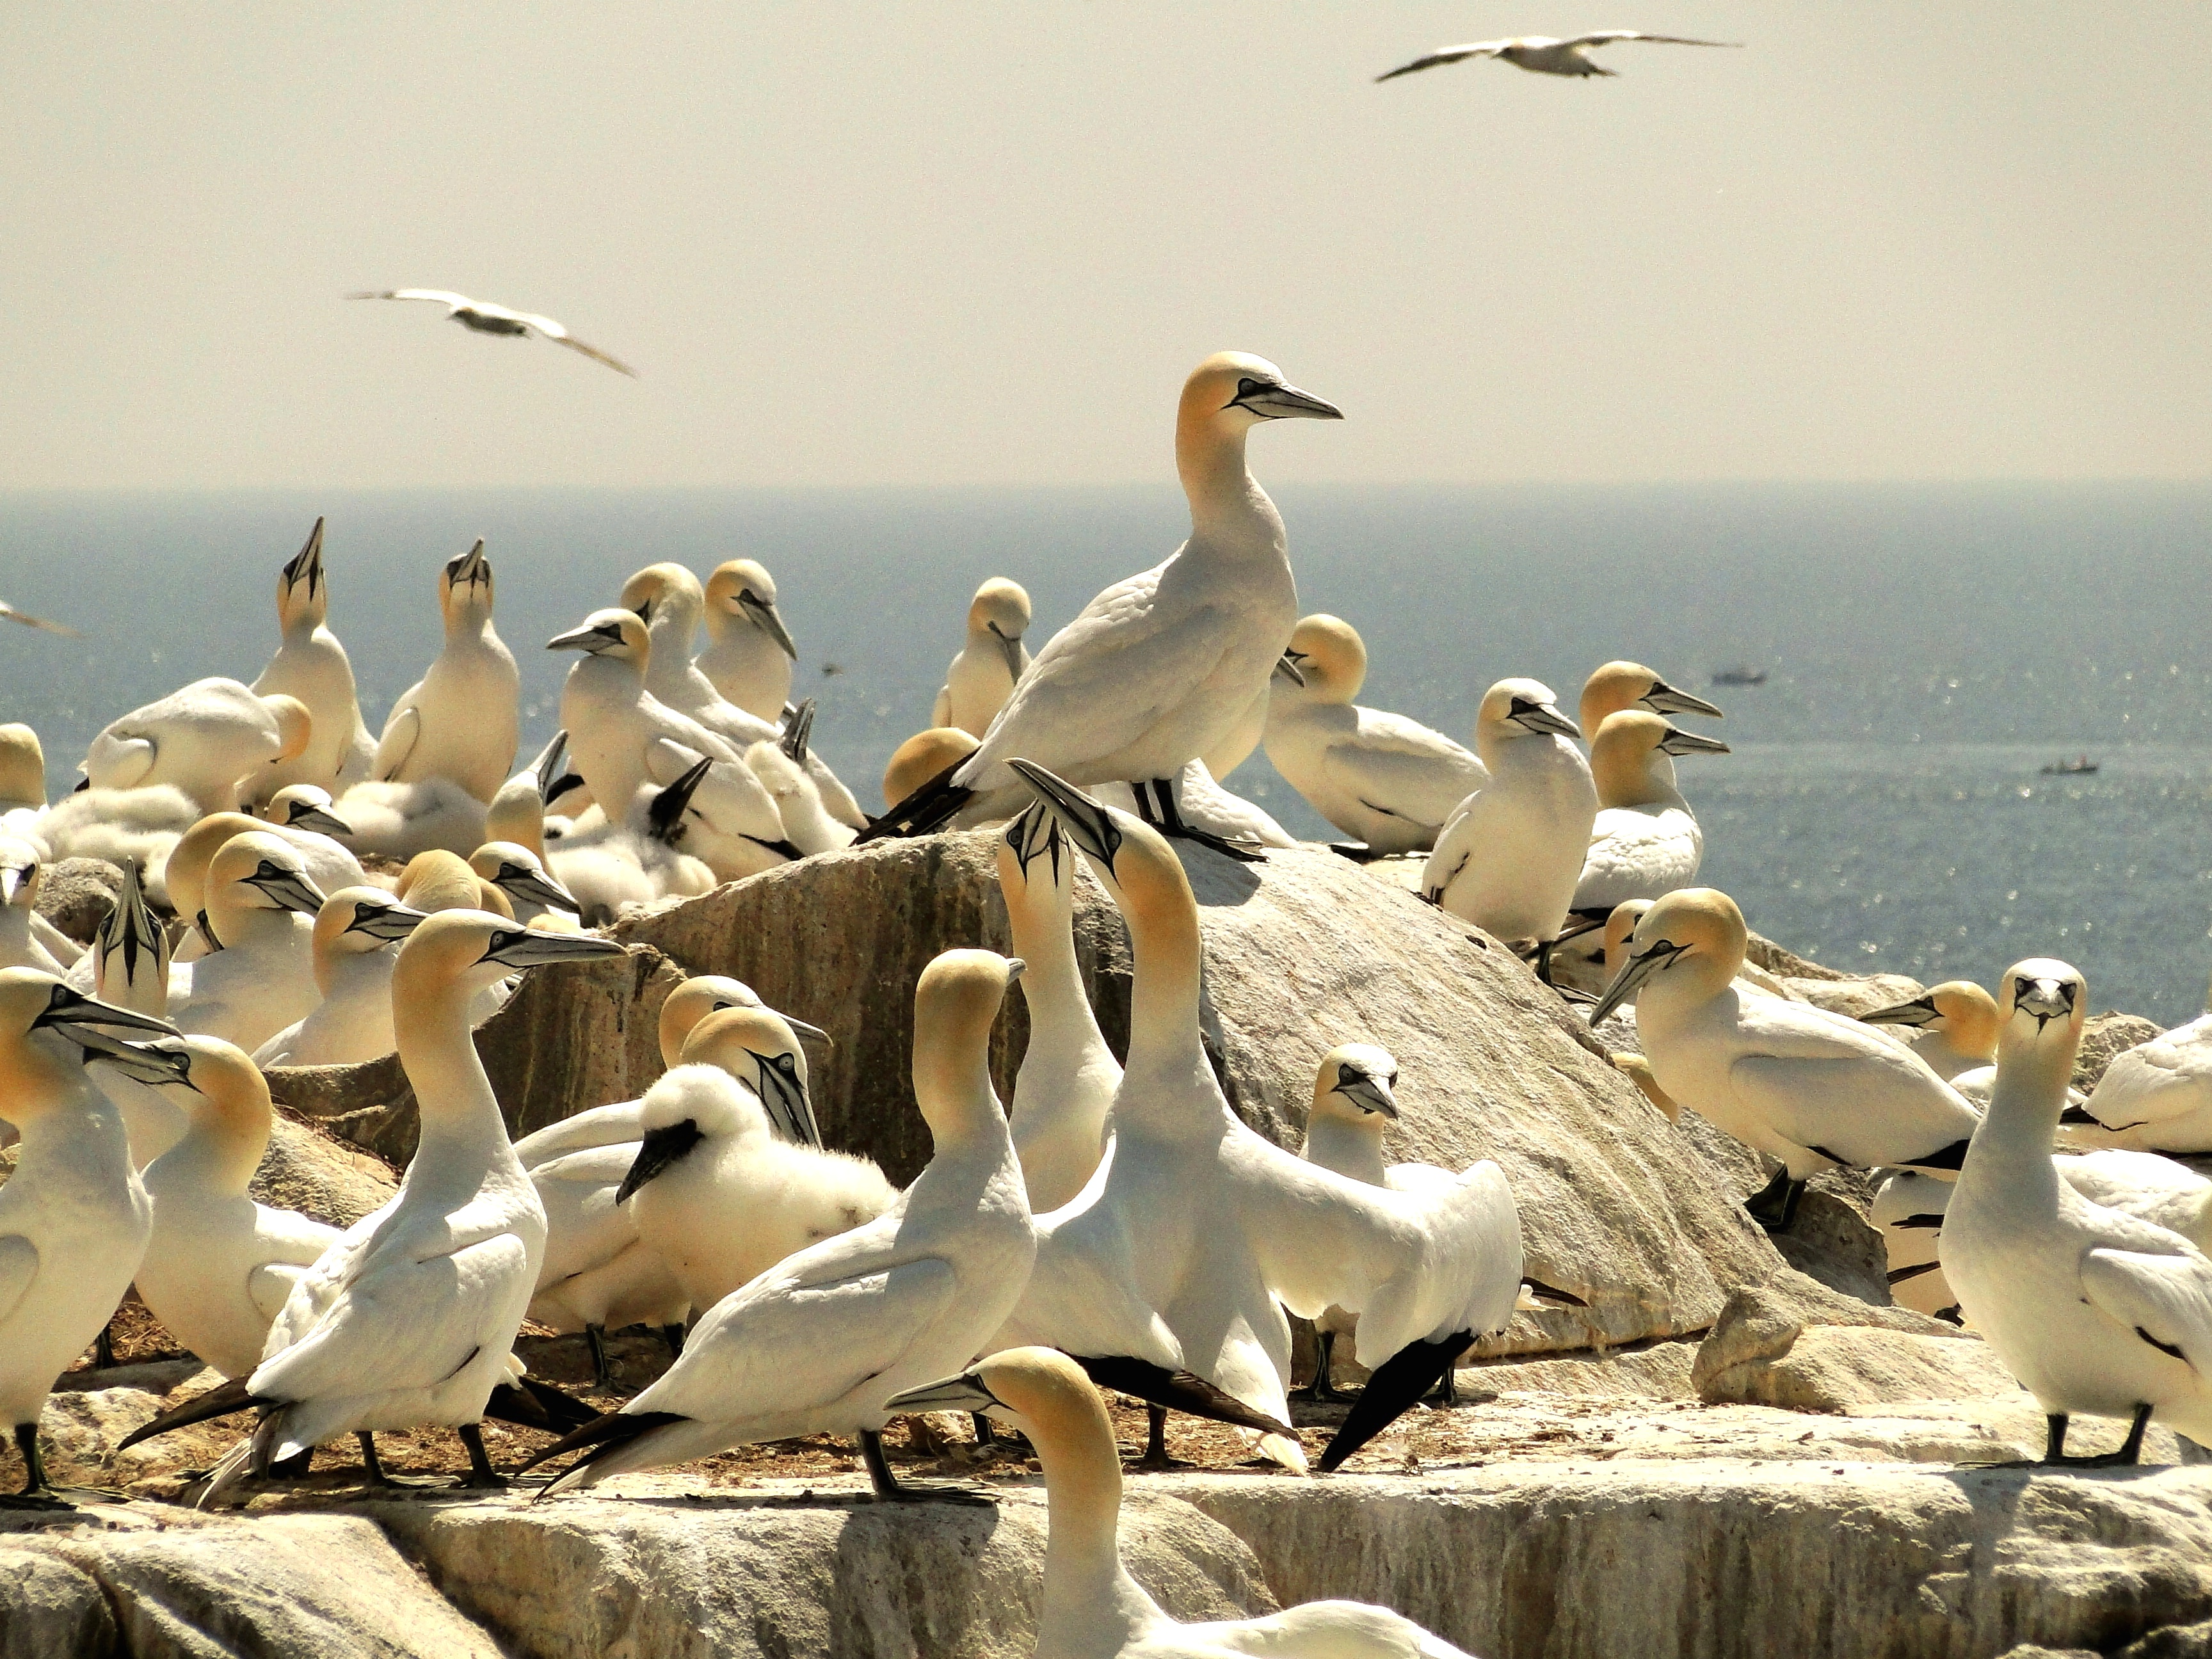 A group of gannets with one perched on a rock above the rest